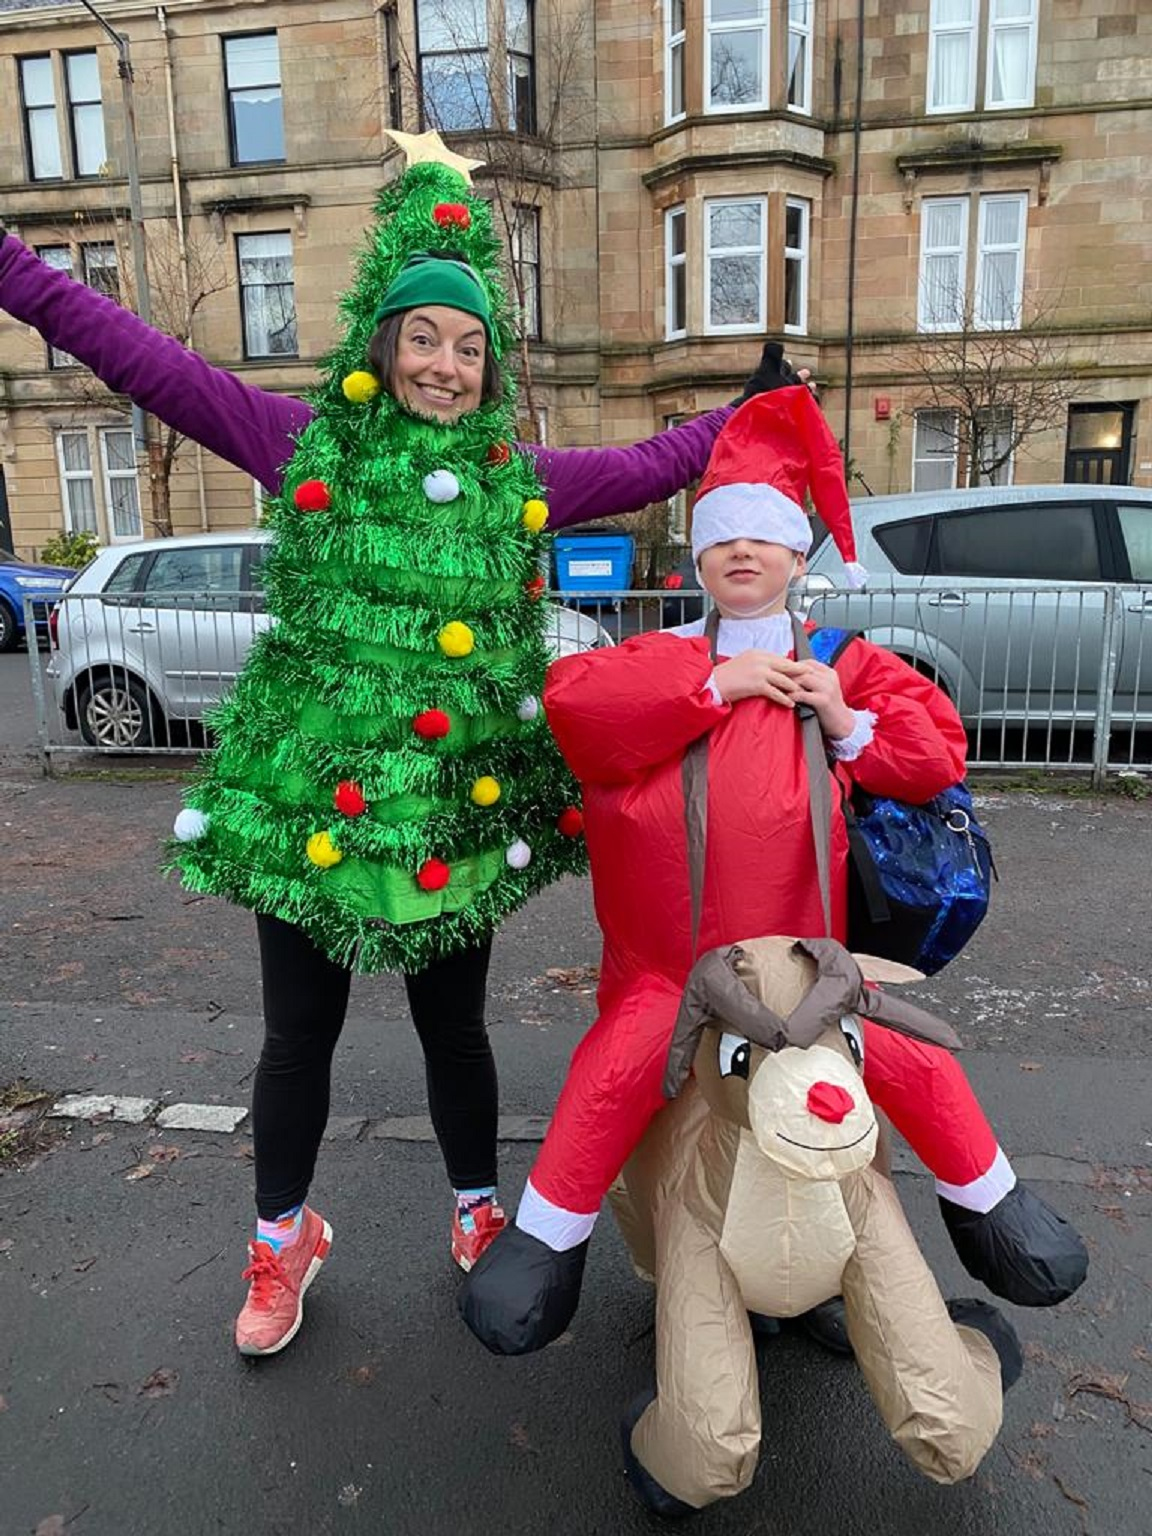 Kate E. Deeming is running and dancing in Scotland dressed as a Christmas tree to raise money for charity